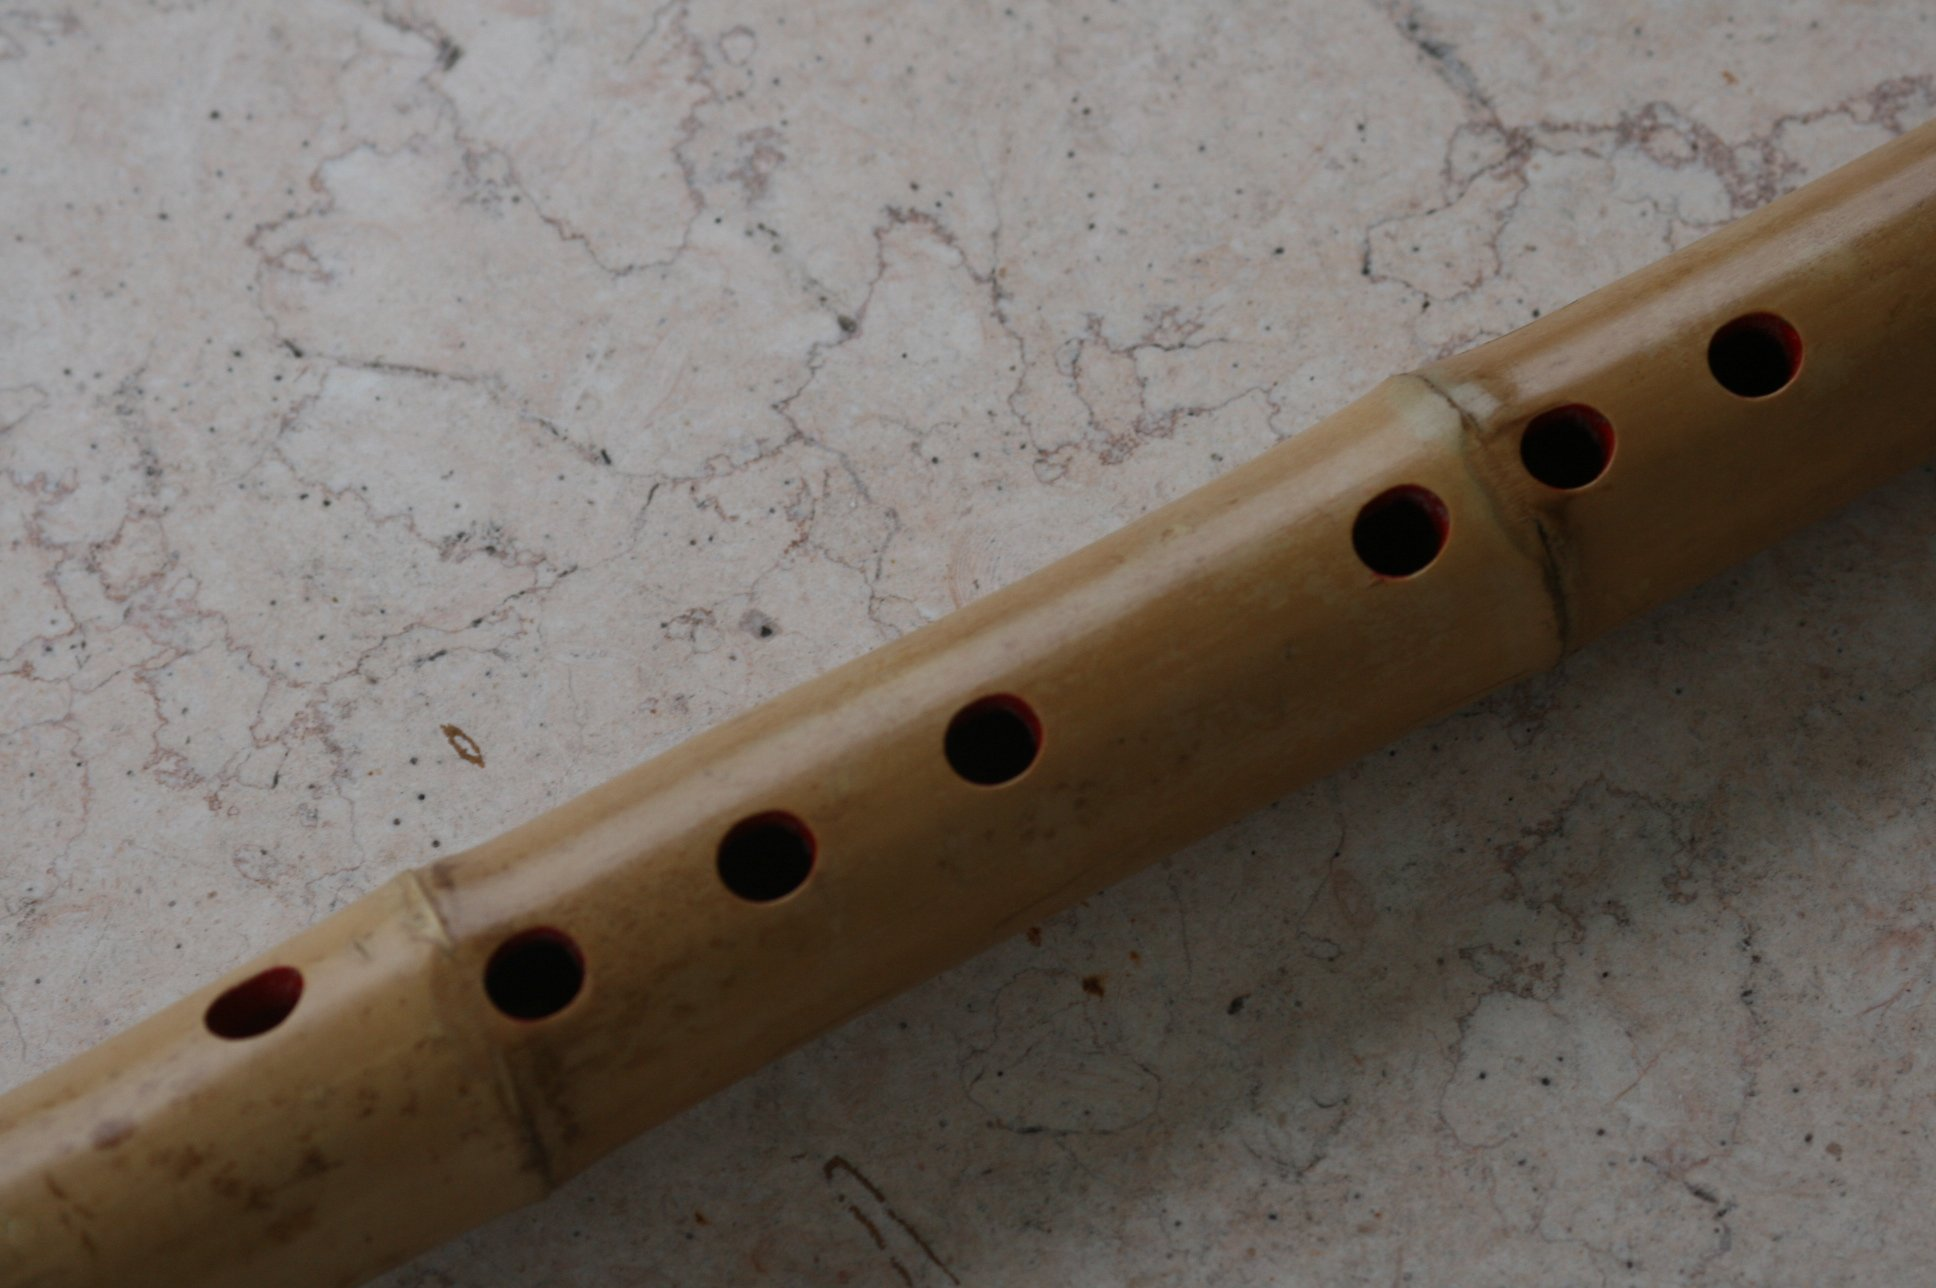 8 Hole U-shape Voicing Mouthpiece Dongxiao Bamboo Flute w. Root End. G Key Zen Instrument